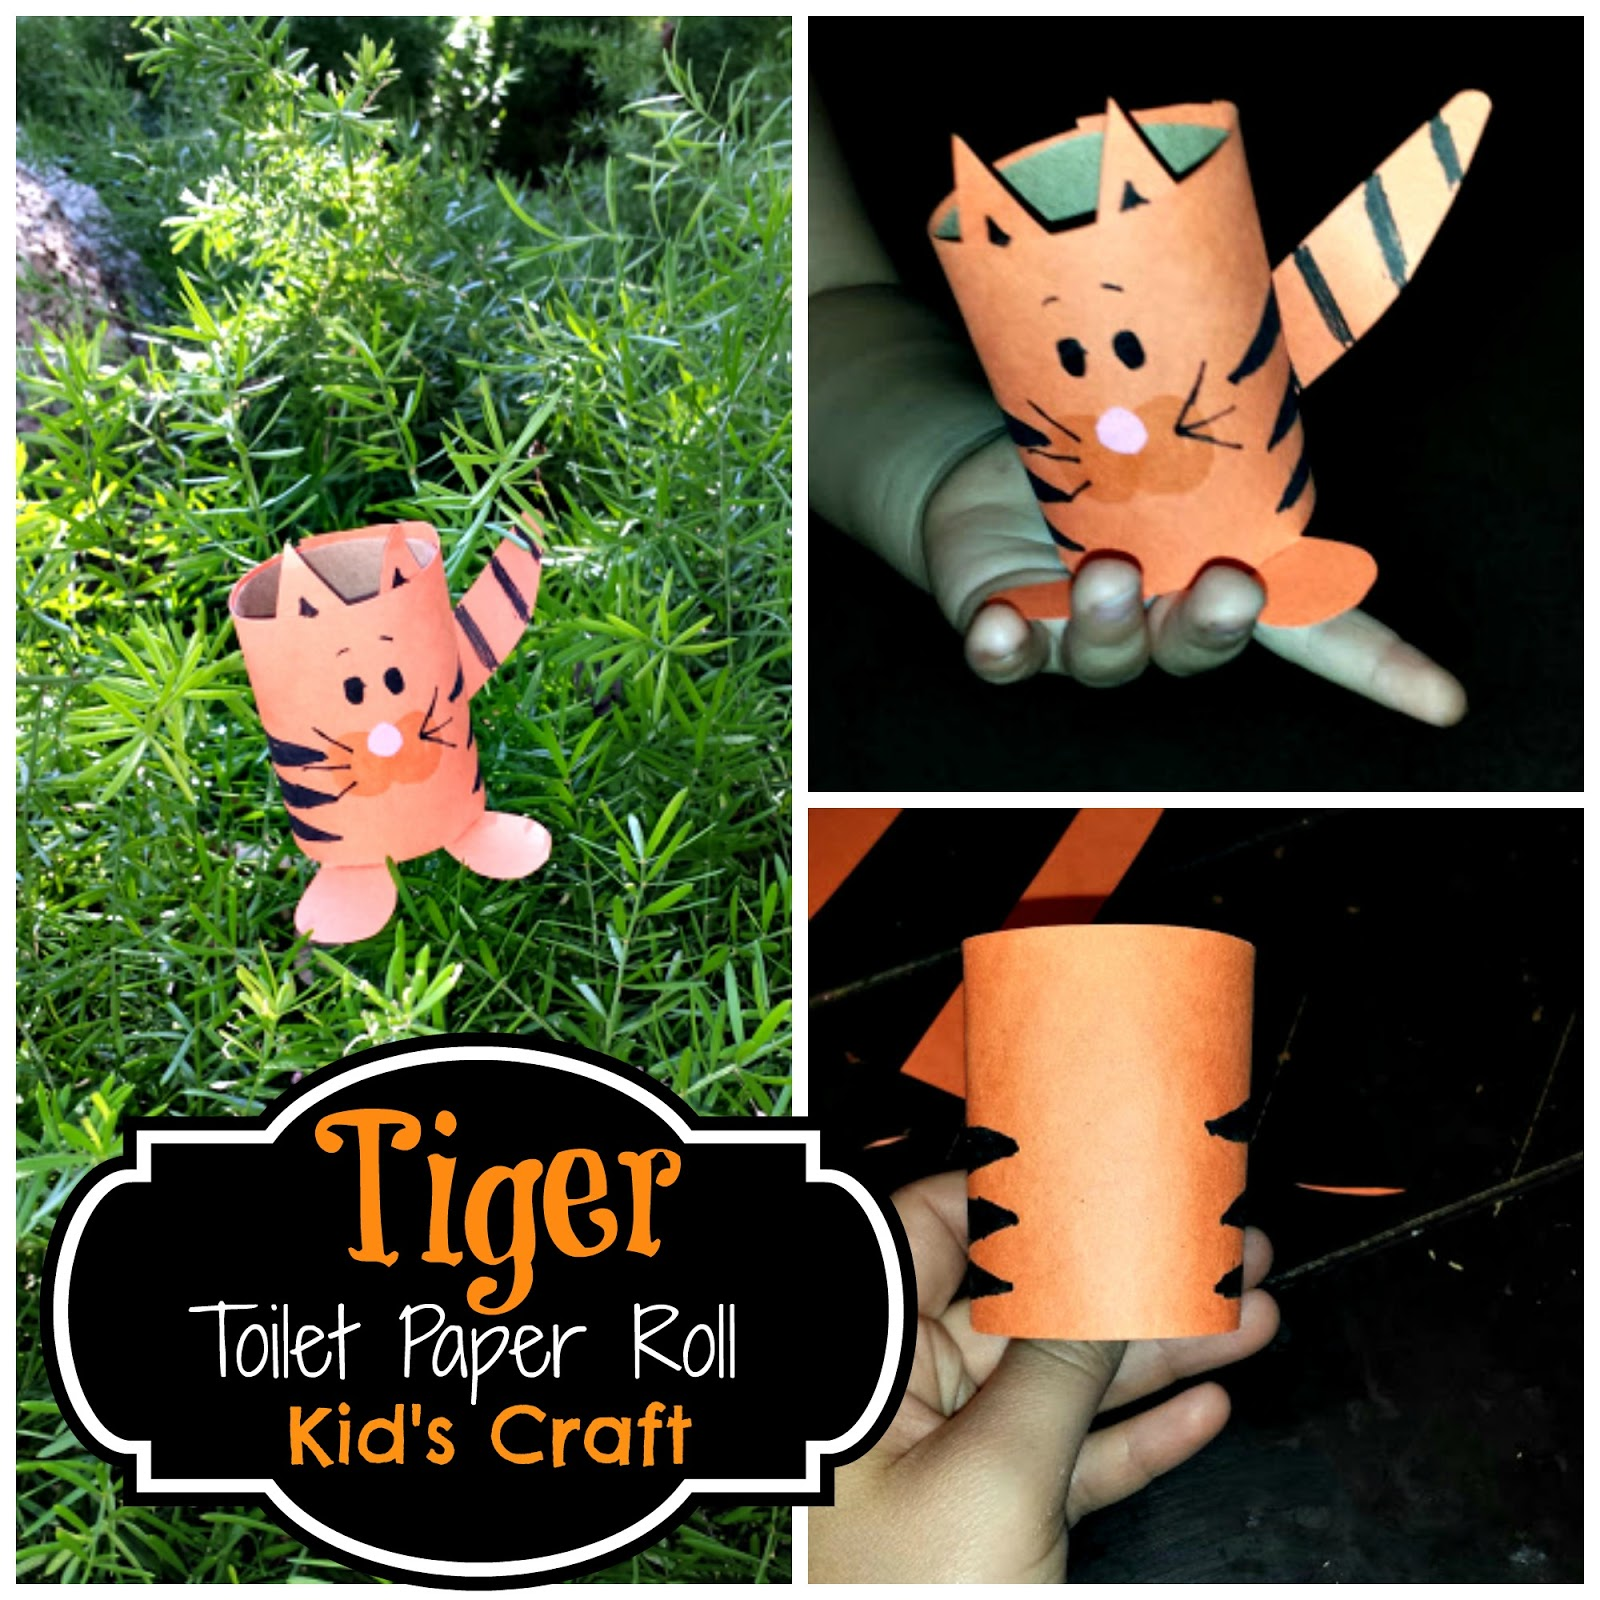 diy easy tiger toilet paper roll craft for kids crafty morning